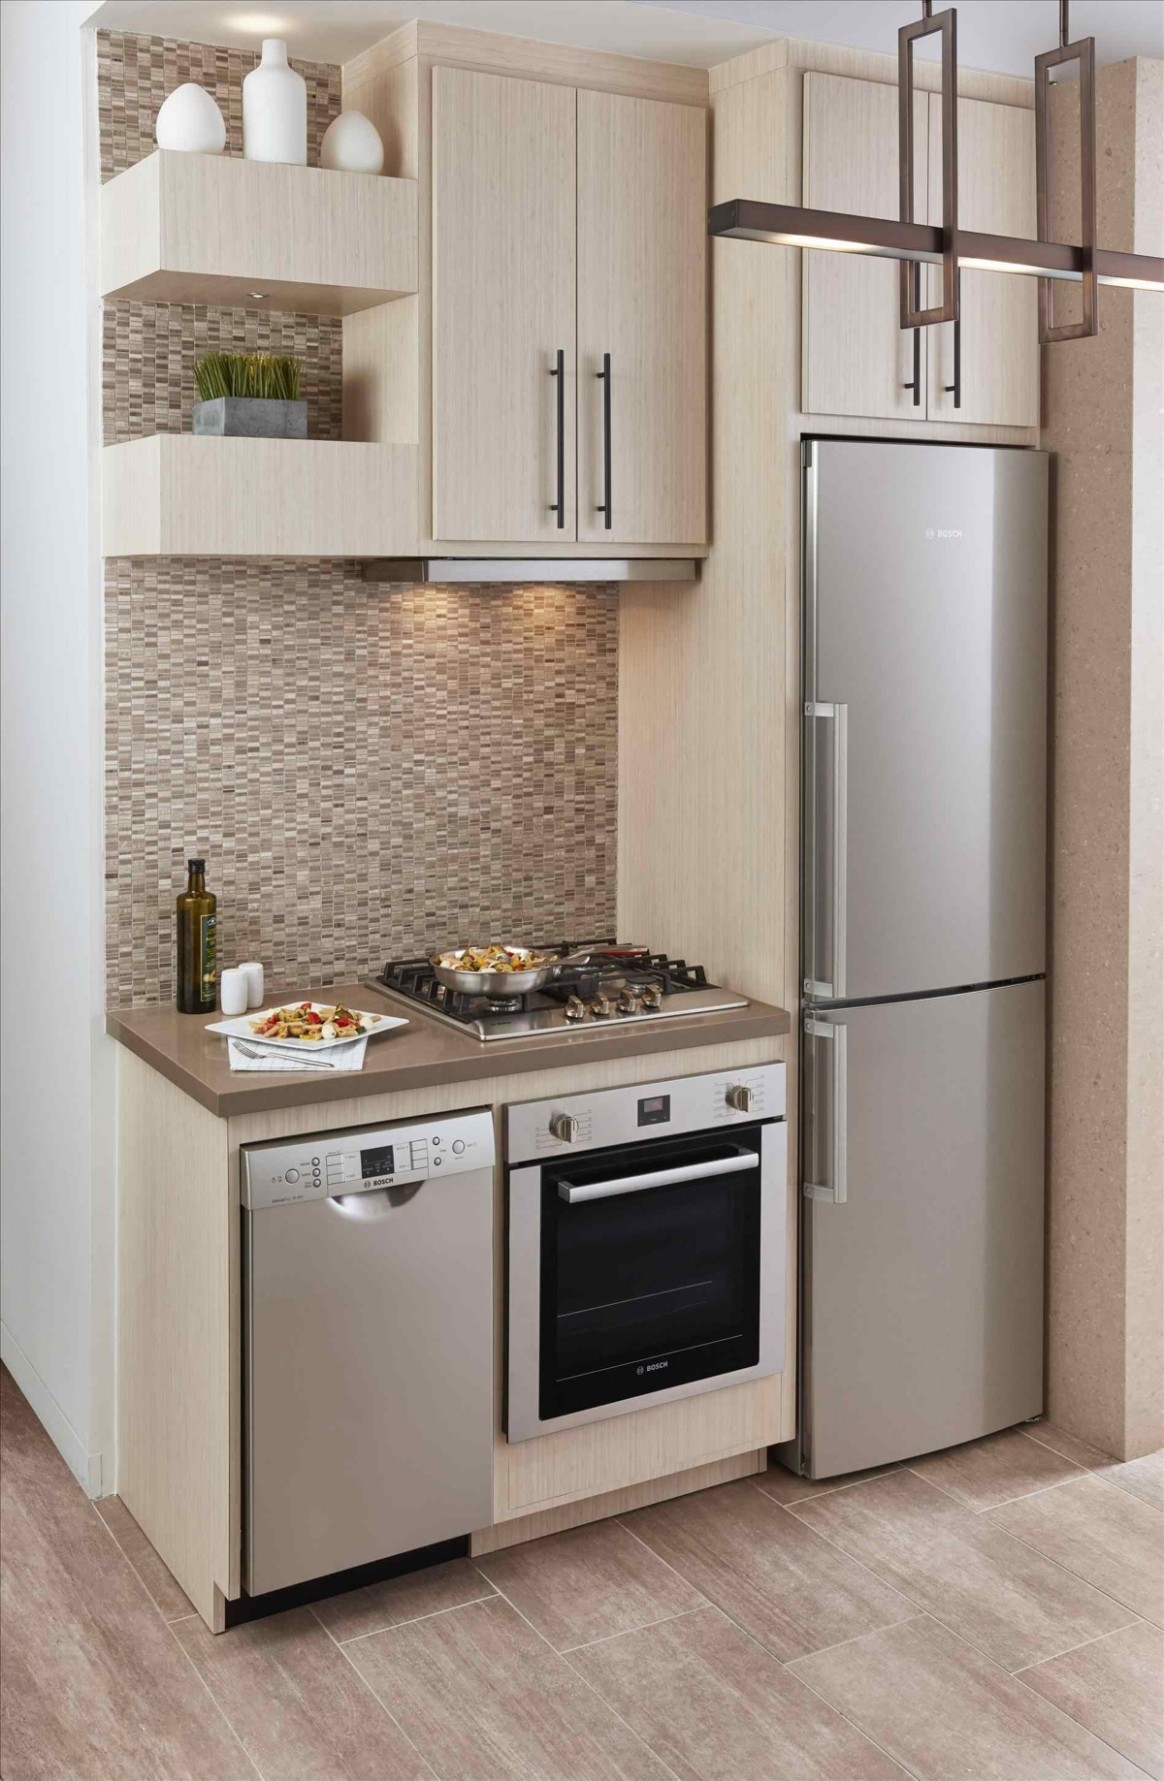 12 Splendid Small Kitchens And Ideas You Can Use From Them - Bedroom Kitchenette Ideas